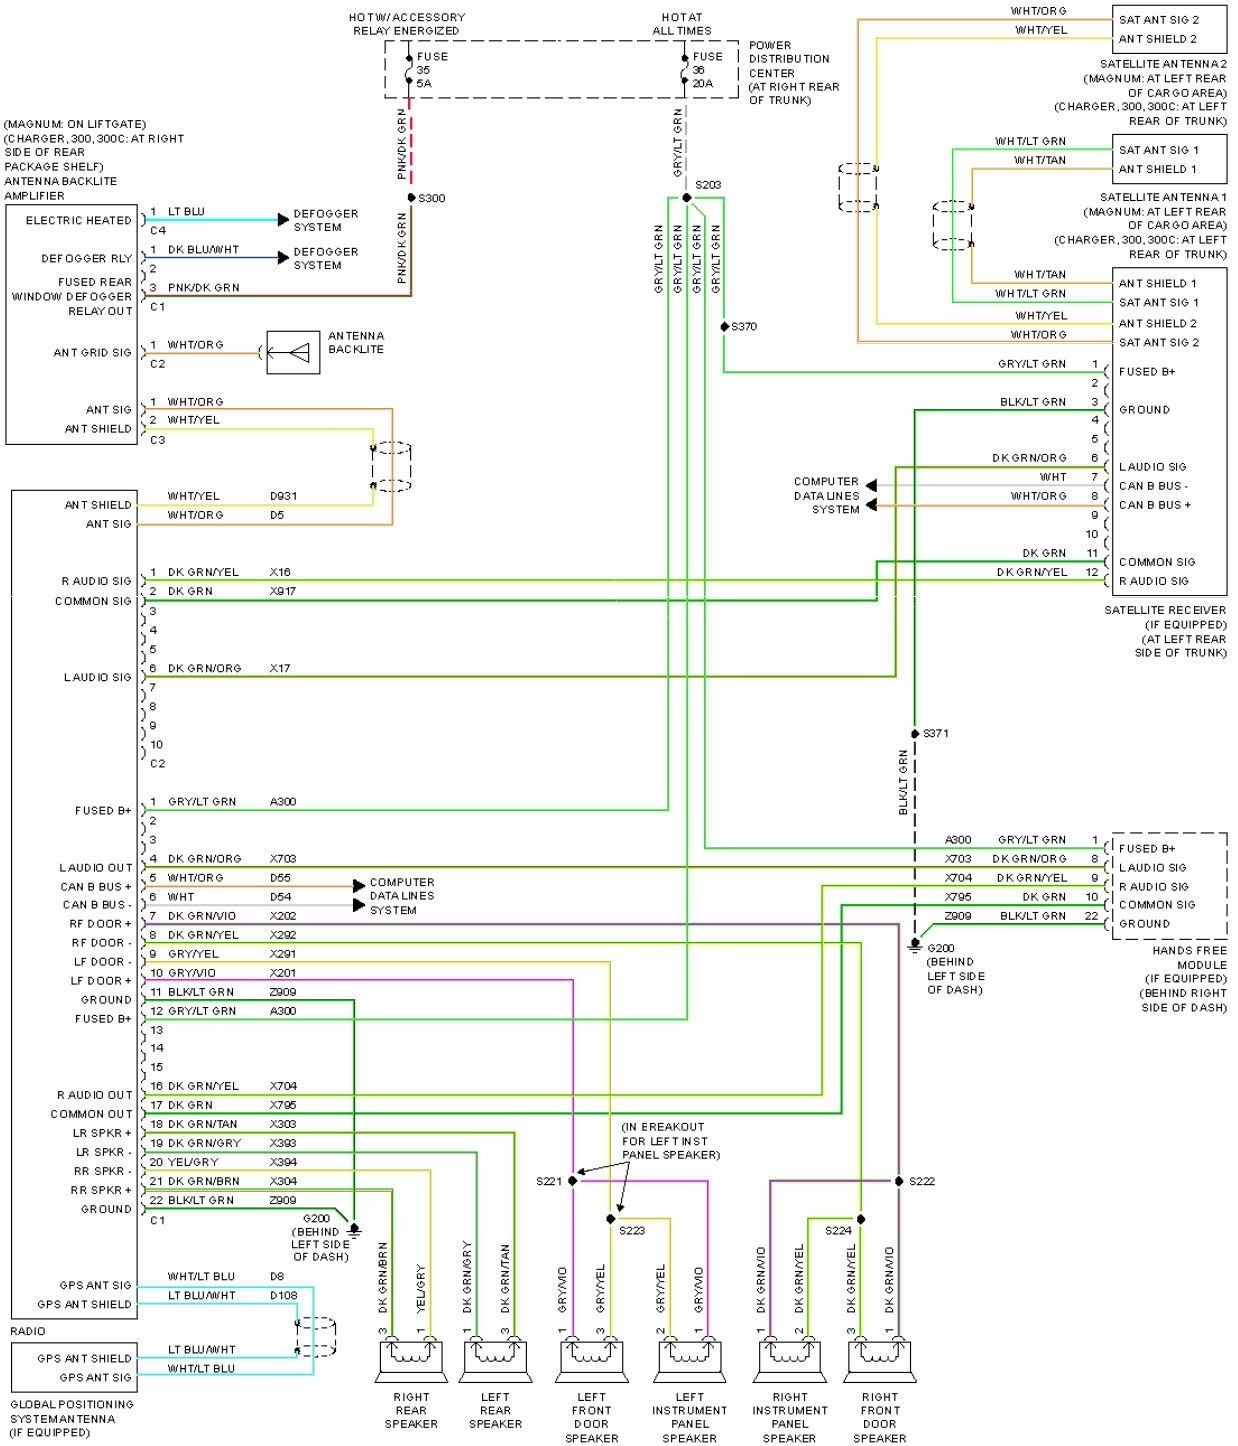 Chrysler 300 Stereo Wiring Diagram interkulinterpretor in 2021 | 2012 dodge  charger, Dodge charger, Chrysler 300Pinterest